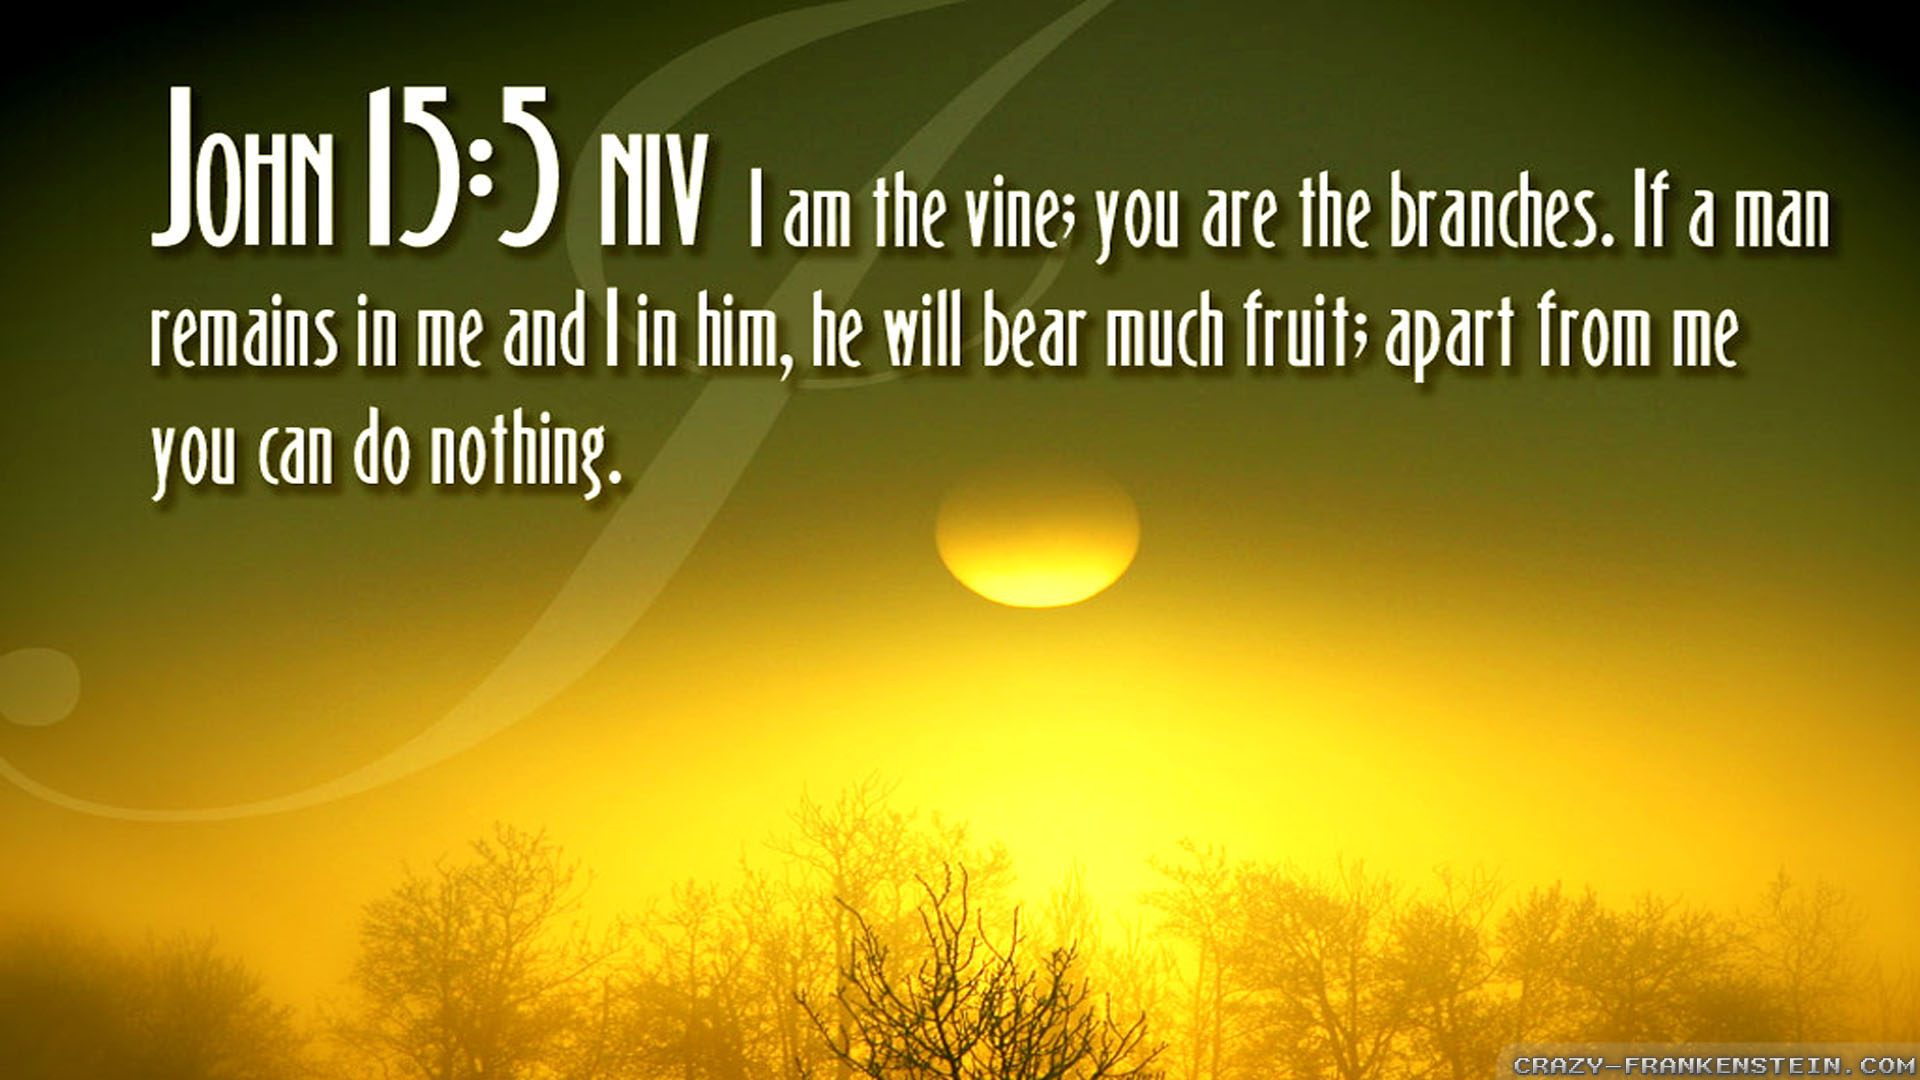 religion BIBLE VERSES quote text poster bible verses g wallpaper 1920x1080